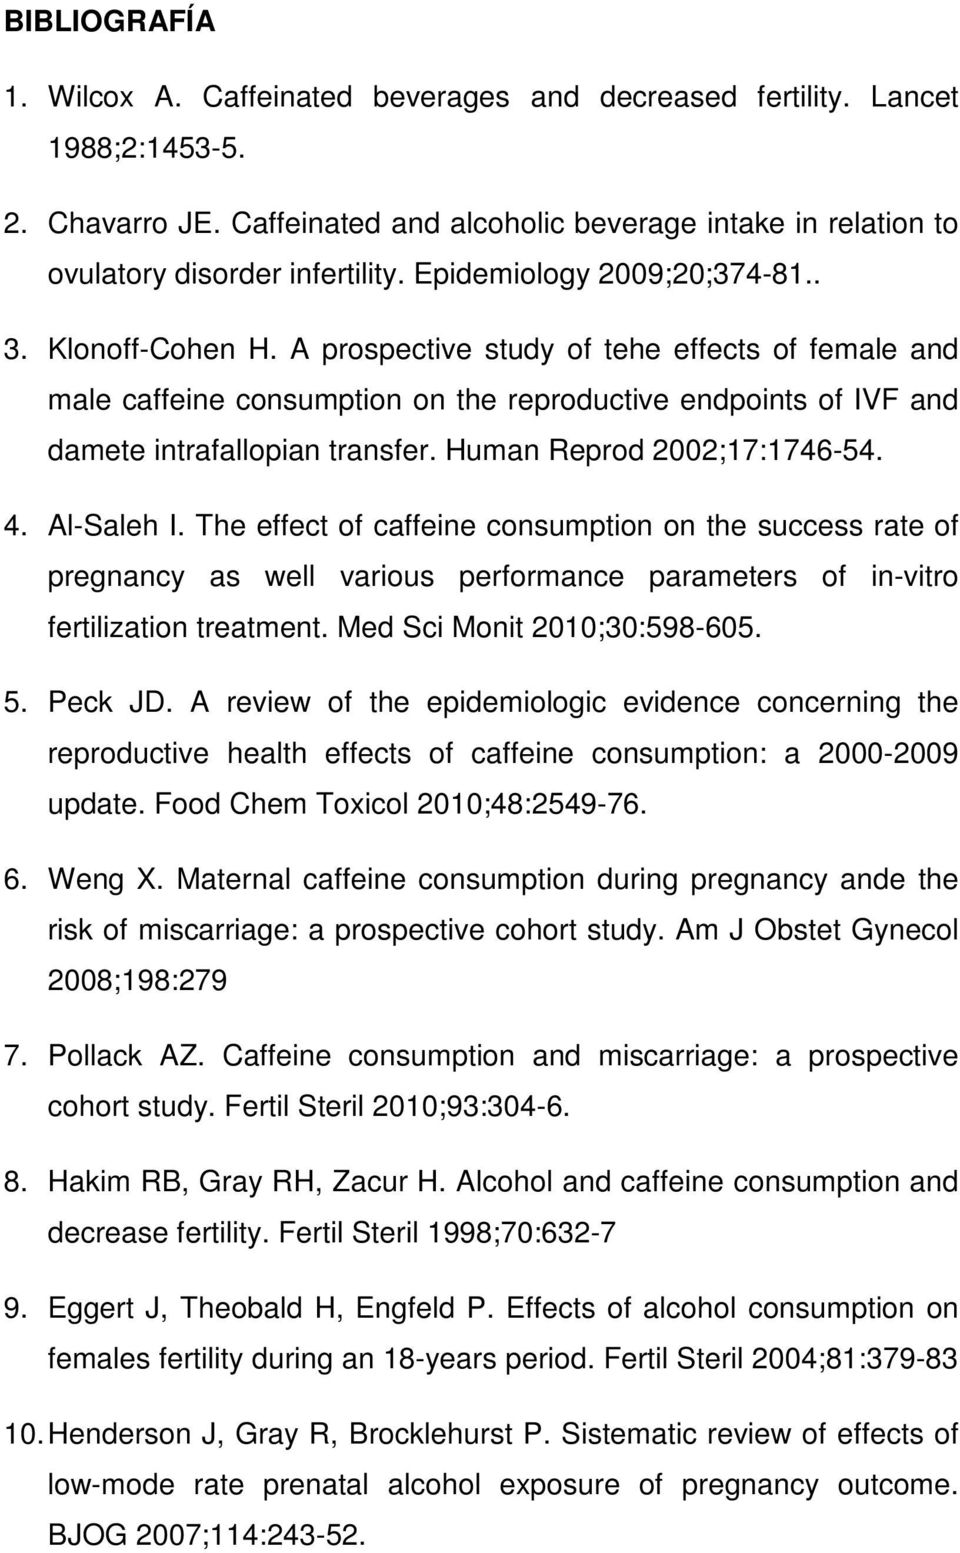 Human Reprod 2002;17:1746-54. 4. Al-Saleh I. The effect of caffeine consumption on the success rate of pregnancy as well various performance parameters of in-vitro fertilization treatment.